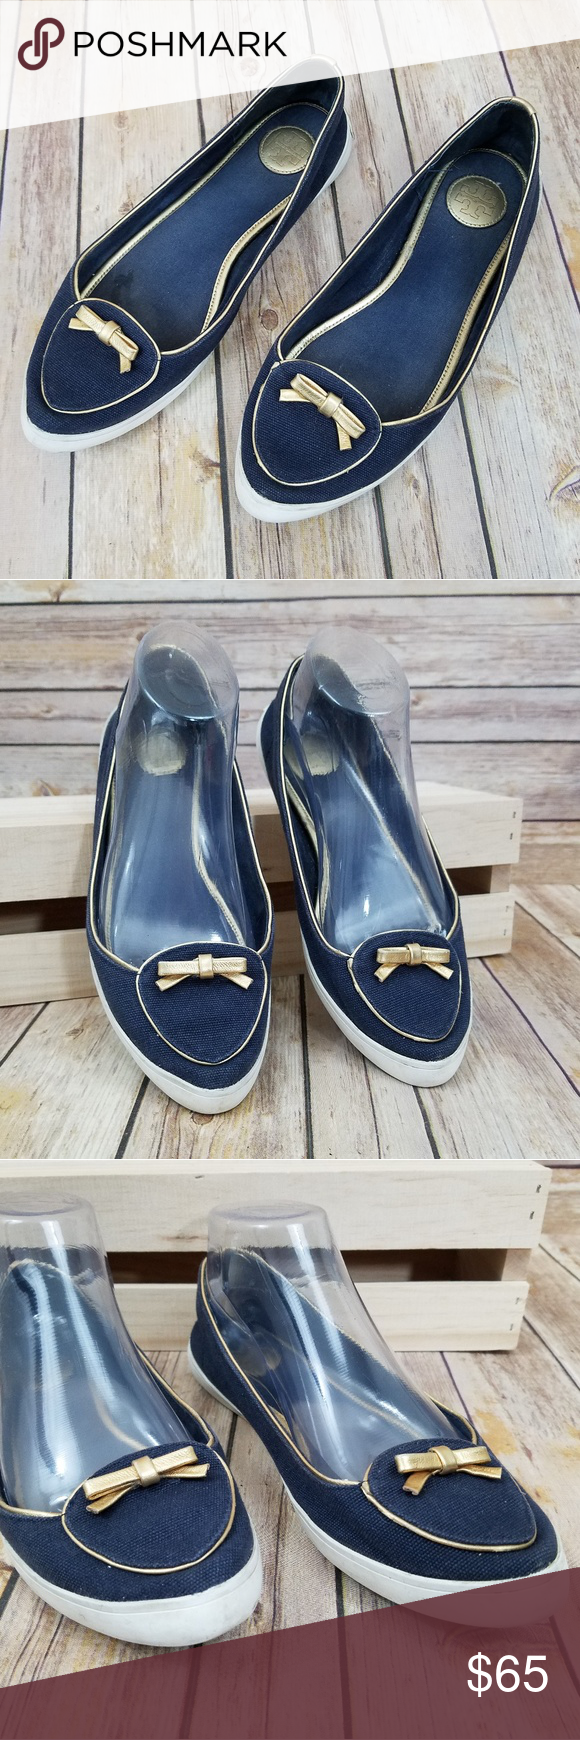 746ecd0f73d5e Tory Burch 8 Dakota Canvas Flats Shoes Women s size 8 Tory Burch Dakota  flats. Blue canvas with gold trim. Flats with sneaker style insole.